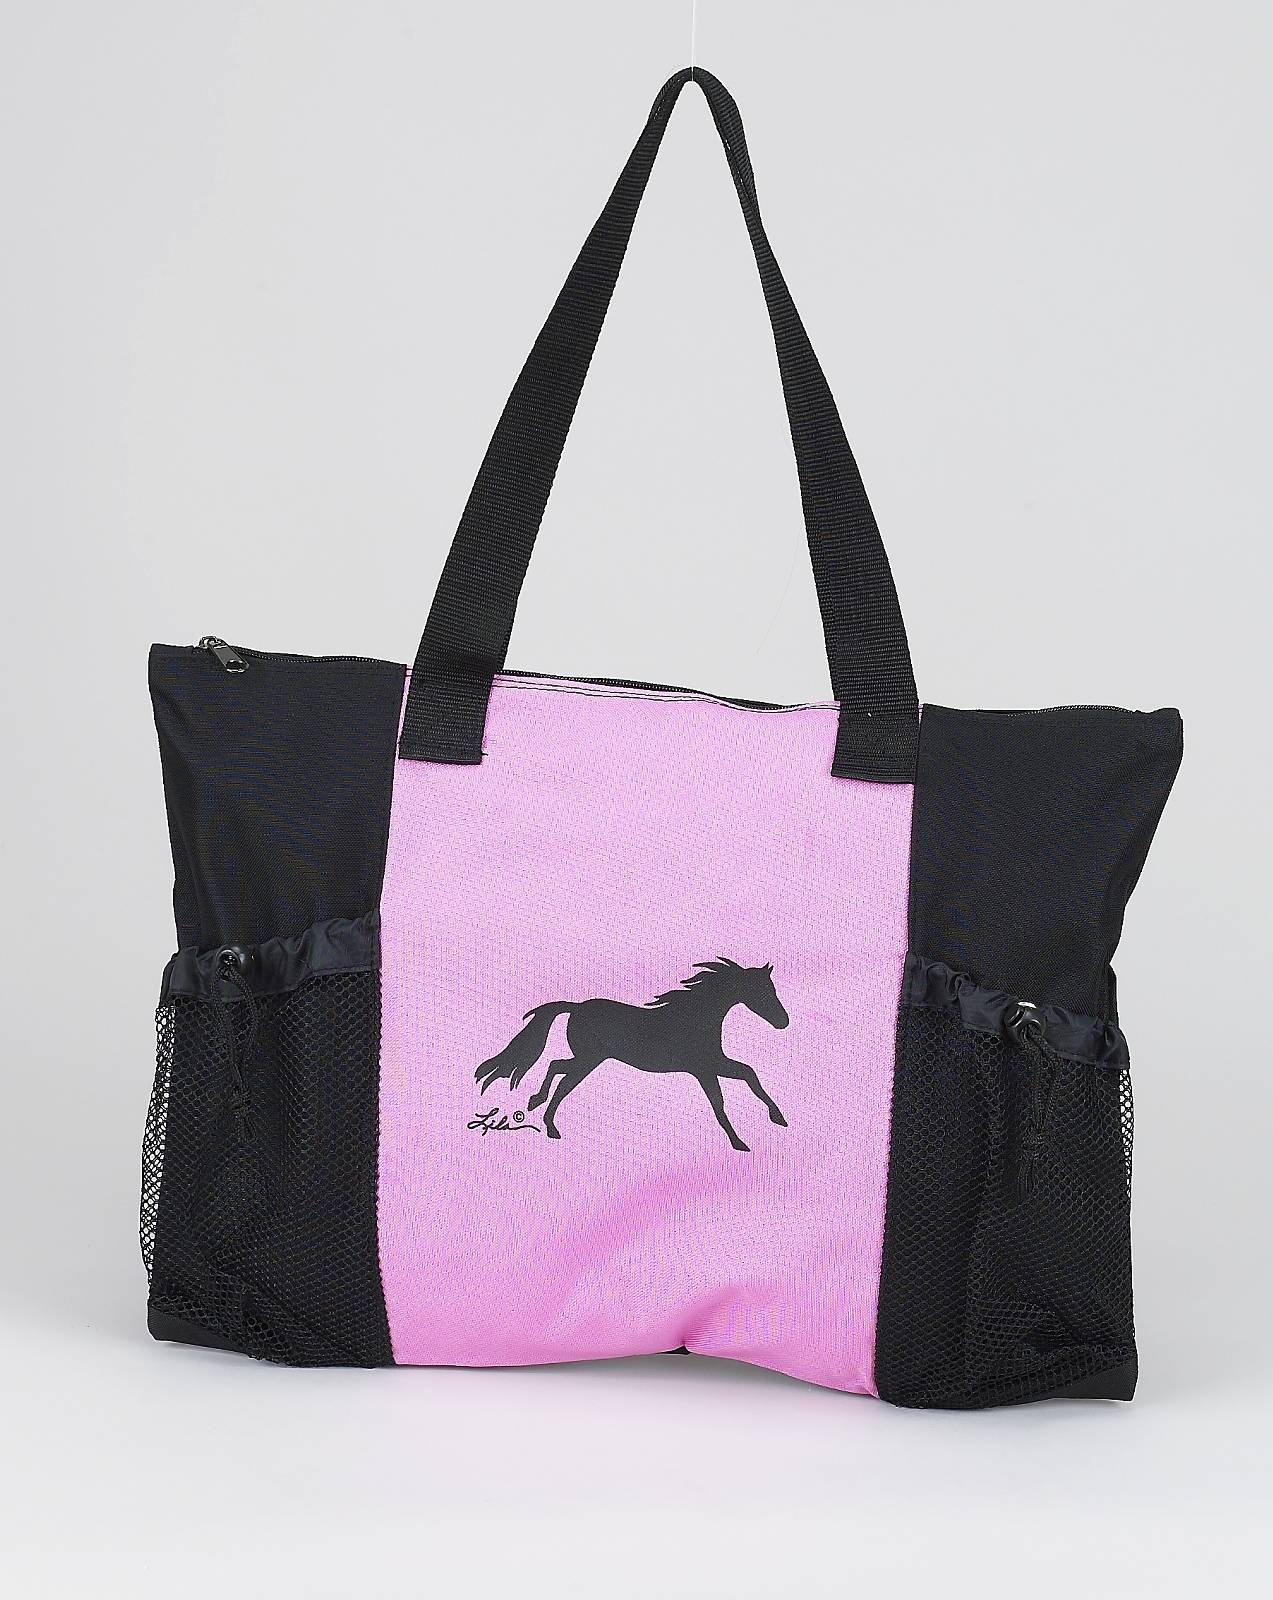 Zip Top Sturdy Tote With Draw String Closure